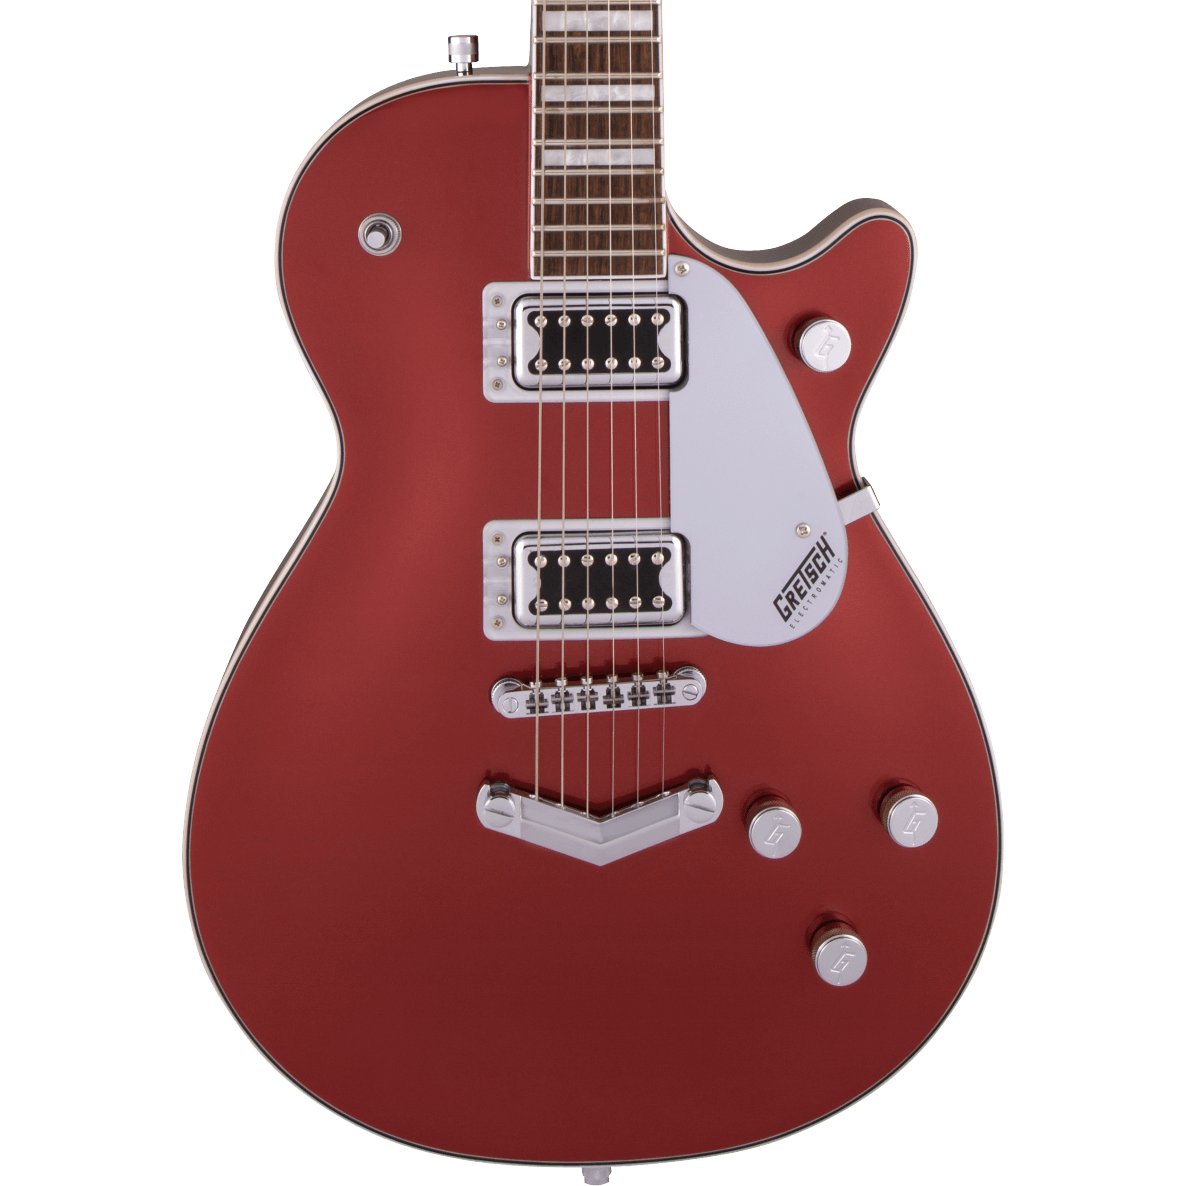 Gretsch G5220 Electromatic Jet BT Single-Cut - Laurel Fingerboard, Firestick Red